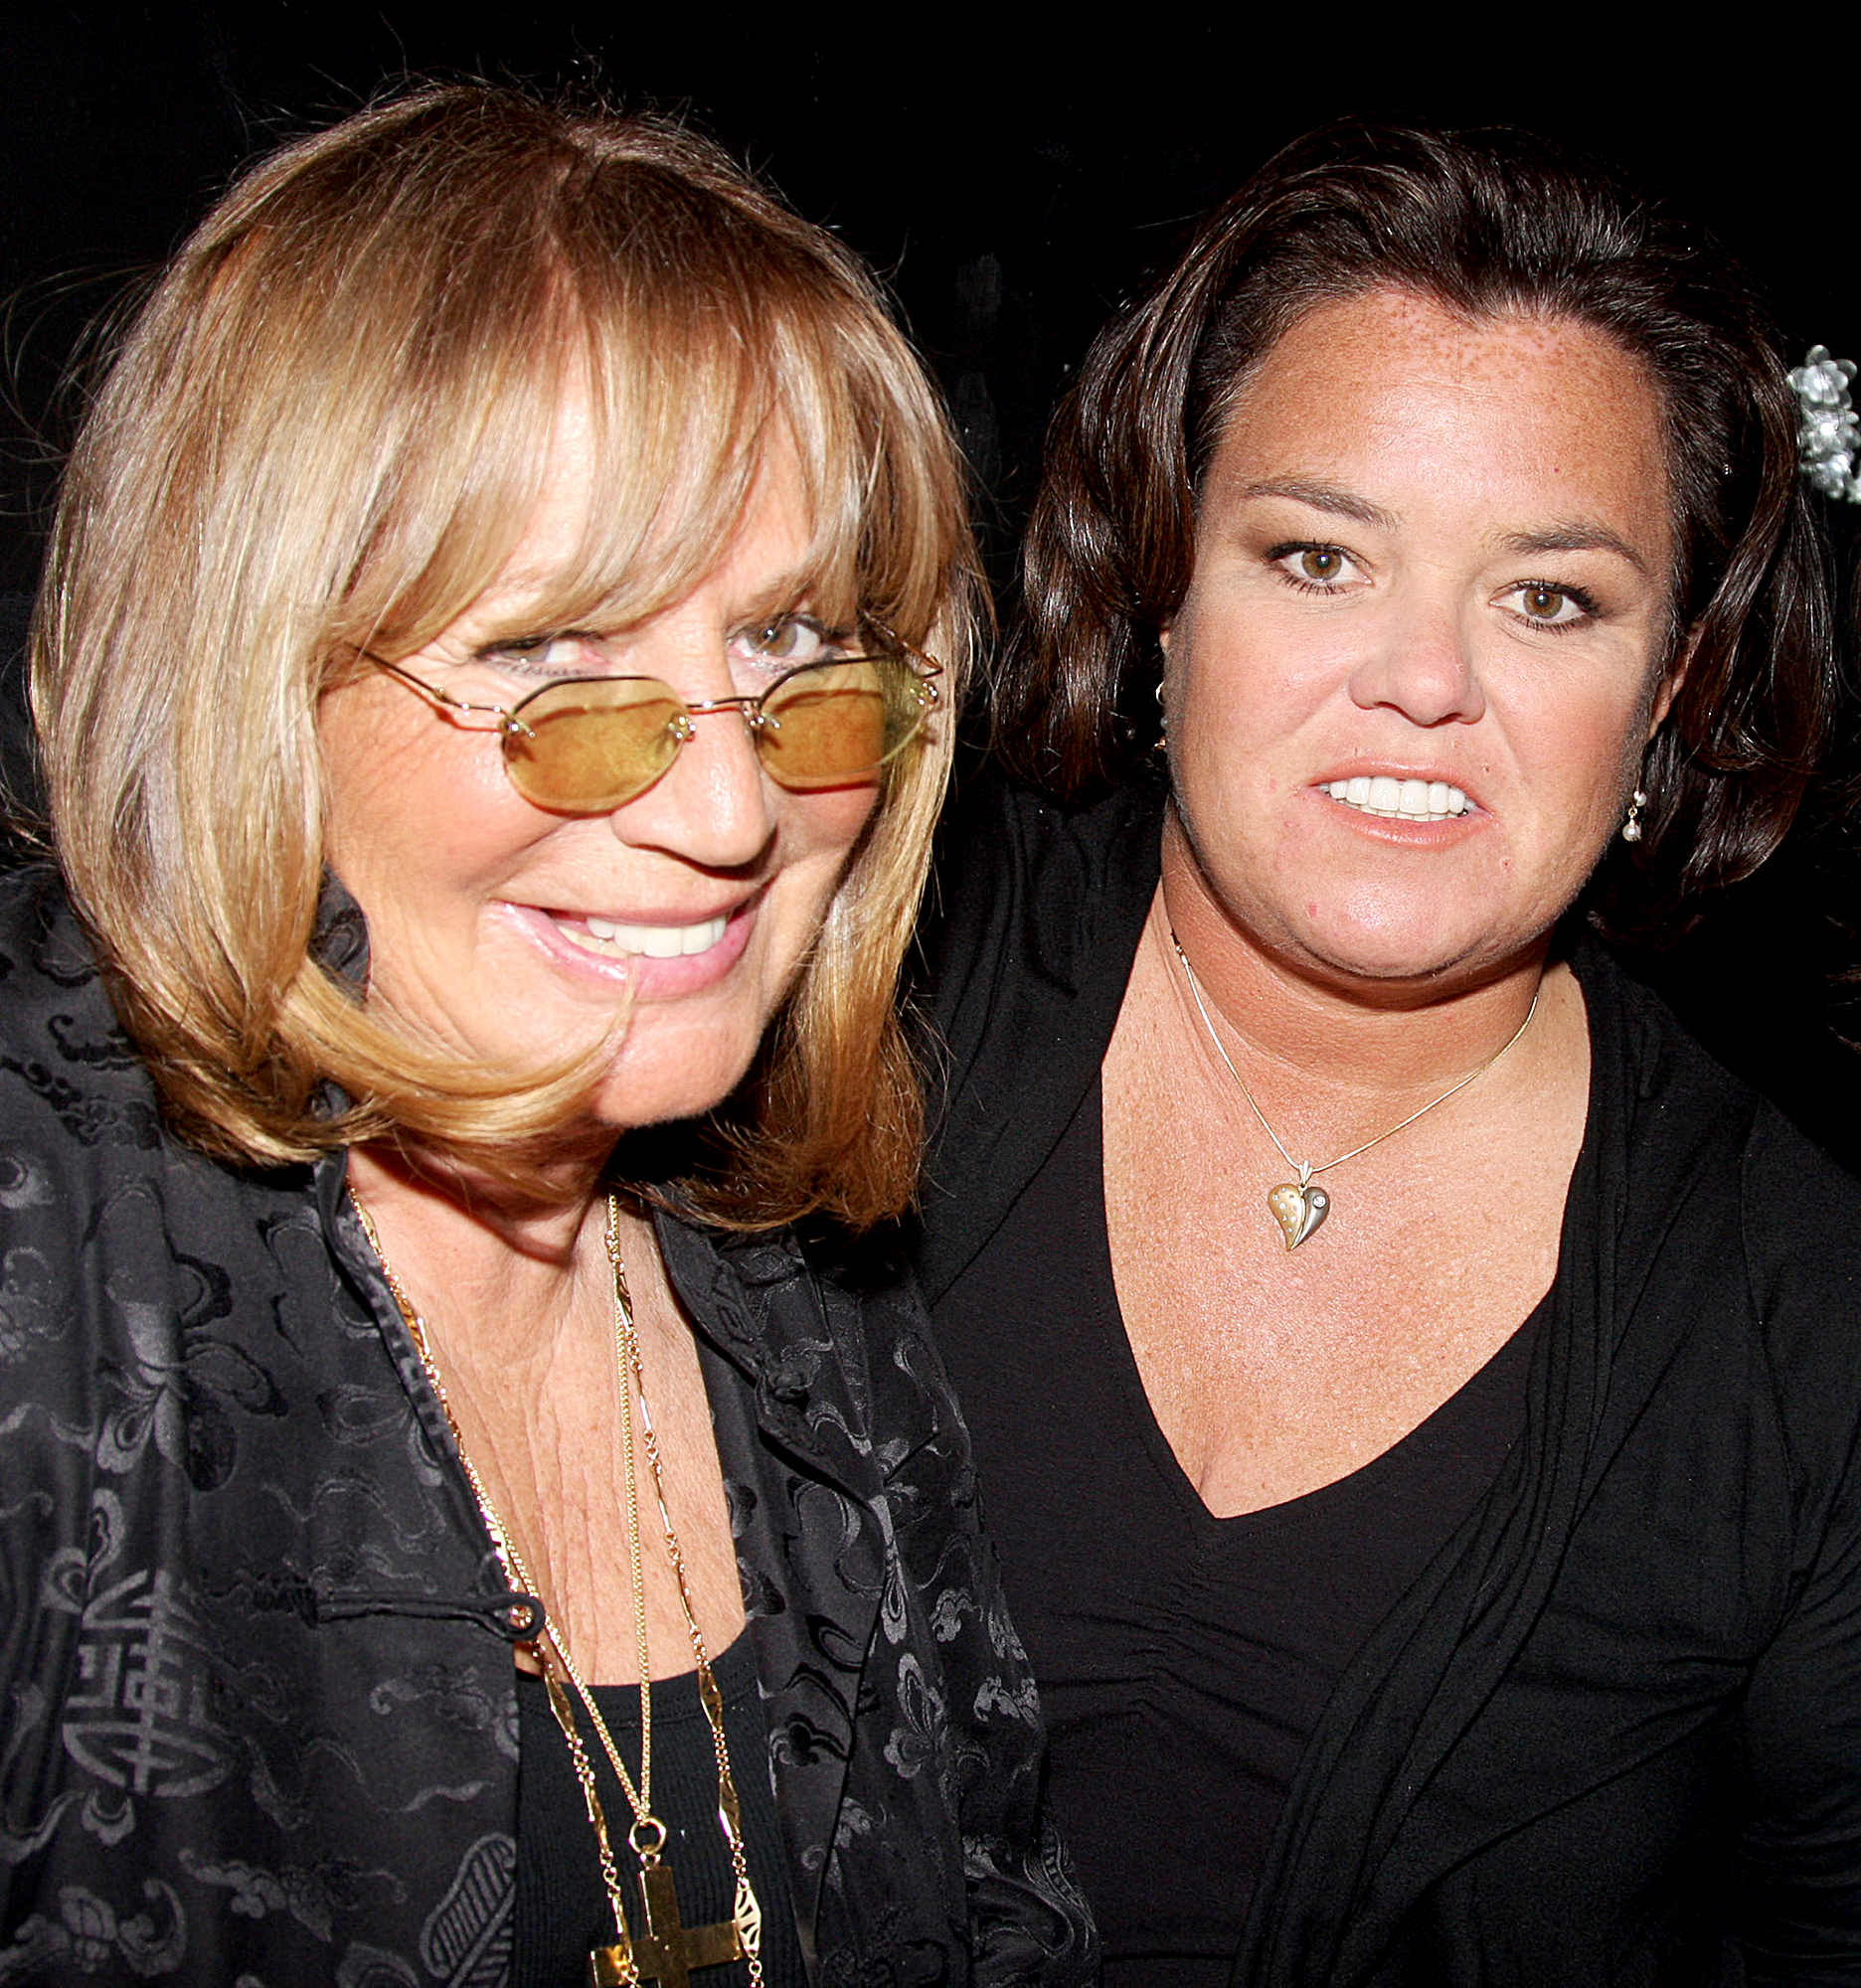 Rosie-O'Donnell-Penny-Marshall-death - Penny Marshall and Rosie O'Donnell pose at the 2009 Passing It On Gala to benefit Rosie's Broadway Kids at the New World Stages on April 27, 2009 in New York City.